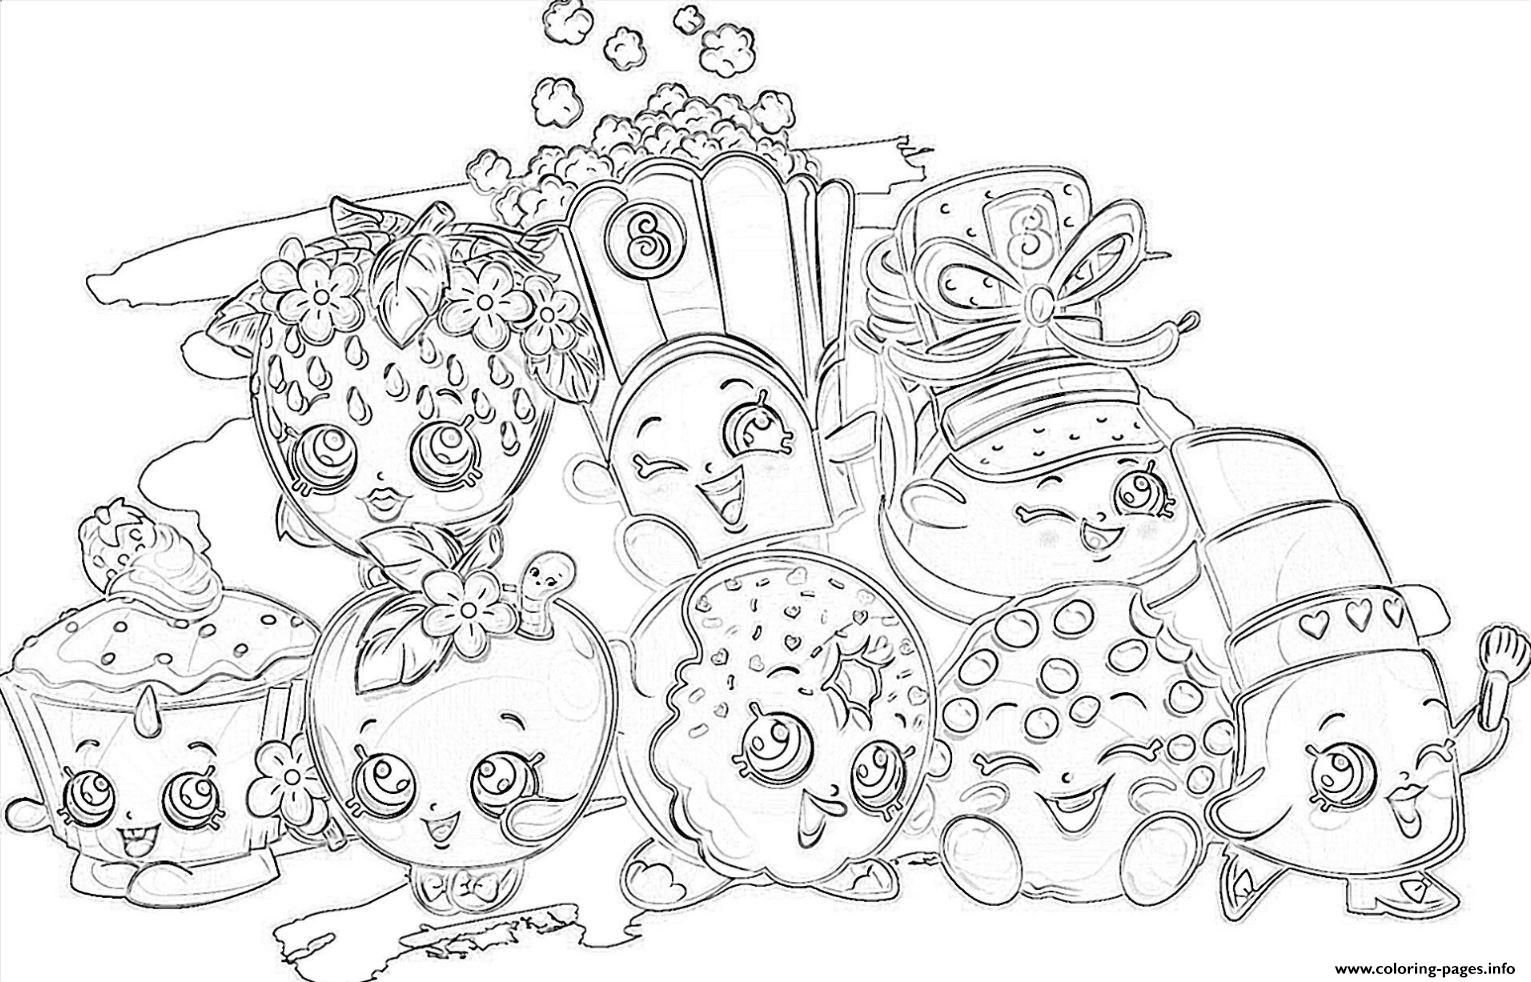 Print shopkins all the family coloring pages Shopkins coloring pages free printable Family